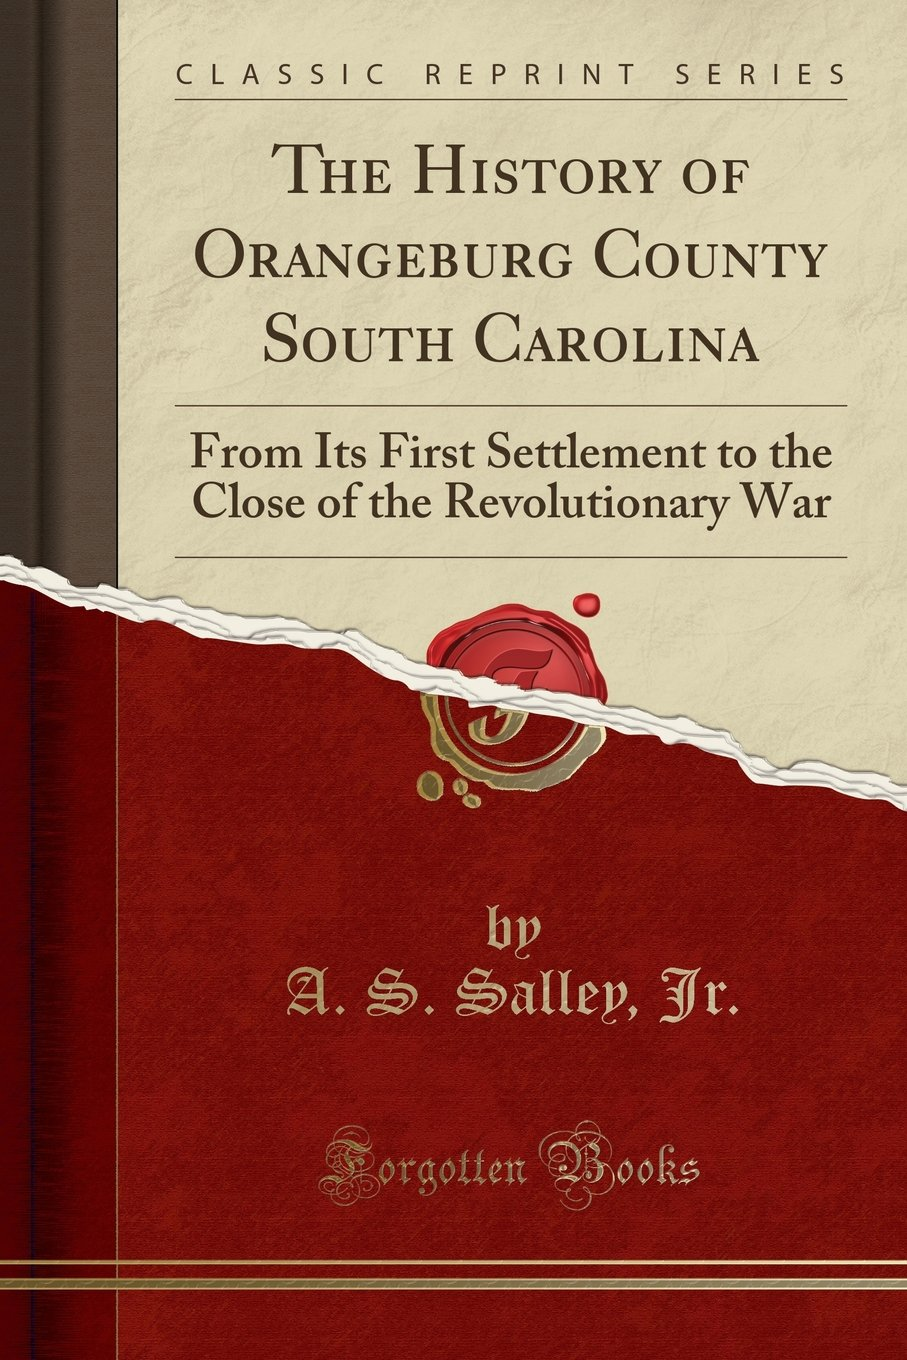 The History of Orangeburg County South Carolina: From Its First Settlement to the Close of the Revolutionary War (Classic Reprint) pdf